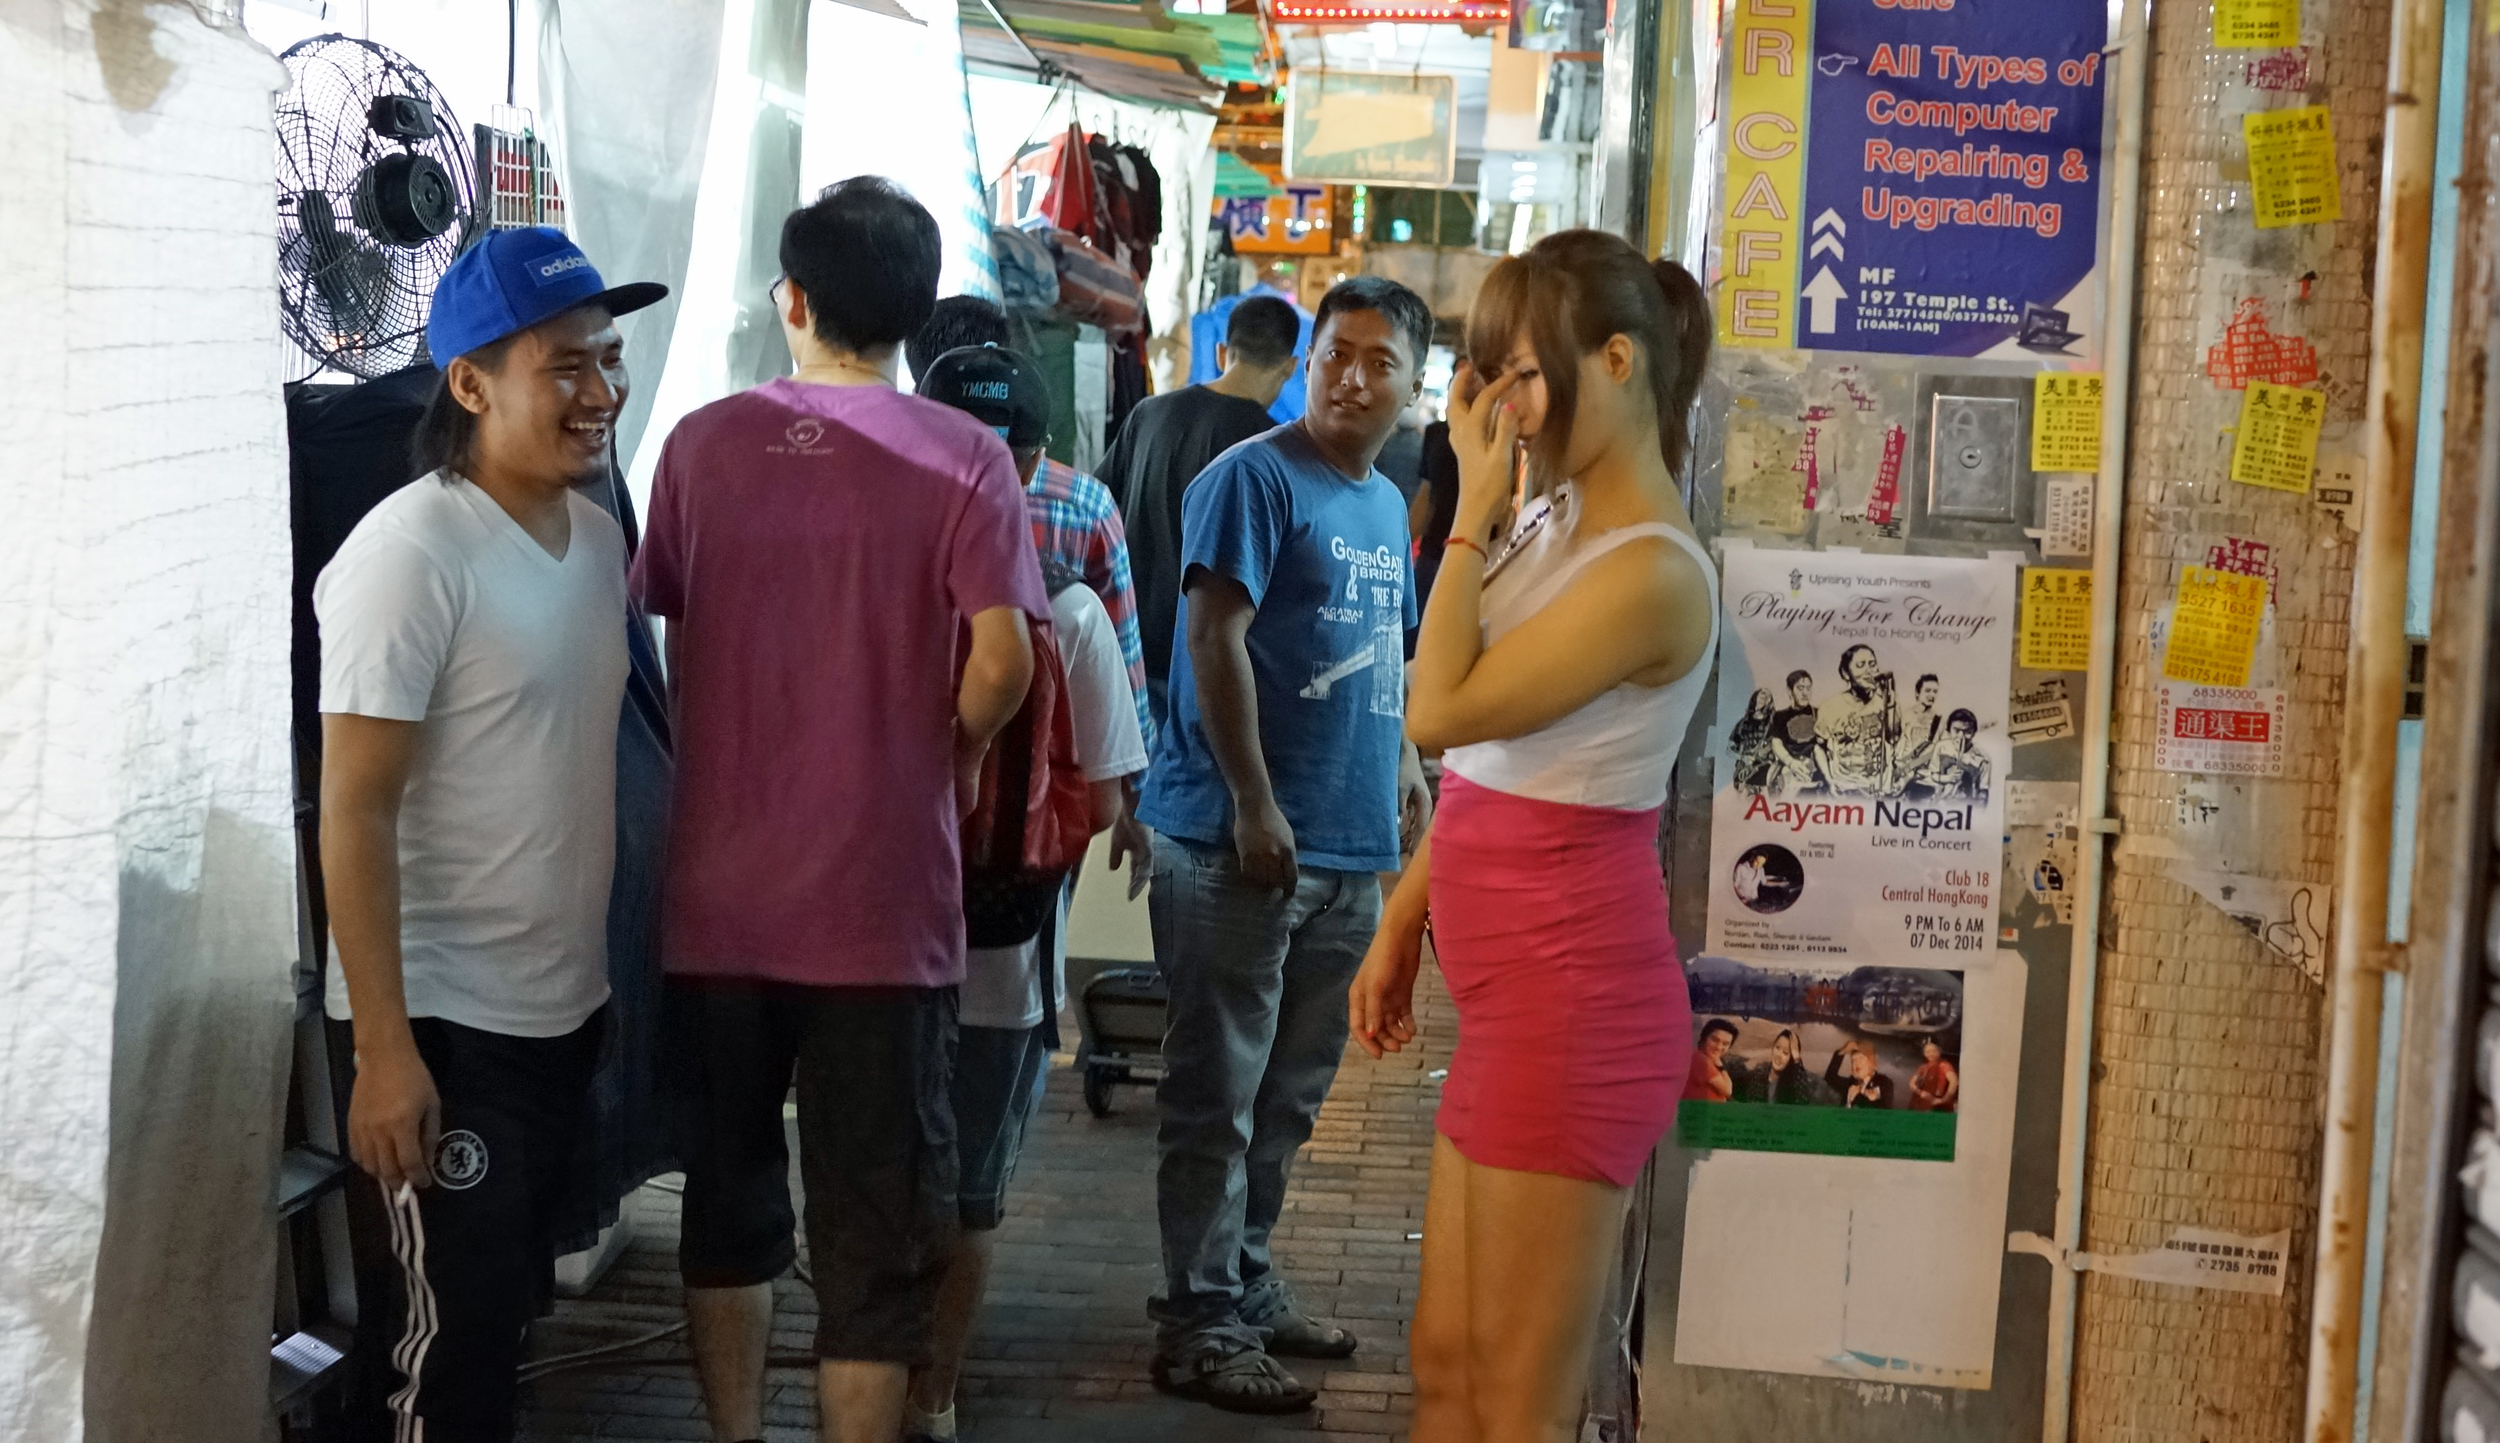 Temple Street Night Market, yeah it sells trashy stuff, the food is horrible and overpriced but do take the time to do some people watching, the whole area is a red light district and there are normally 25 / 40 prostitutes propping up walls.. it is all quite fascinating and the place has a buzz to it.